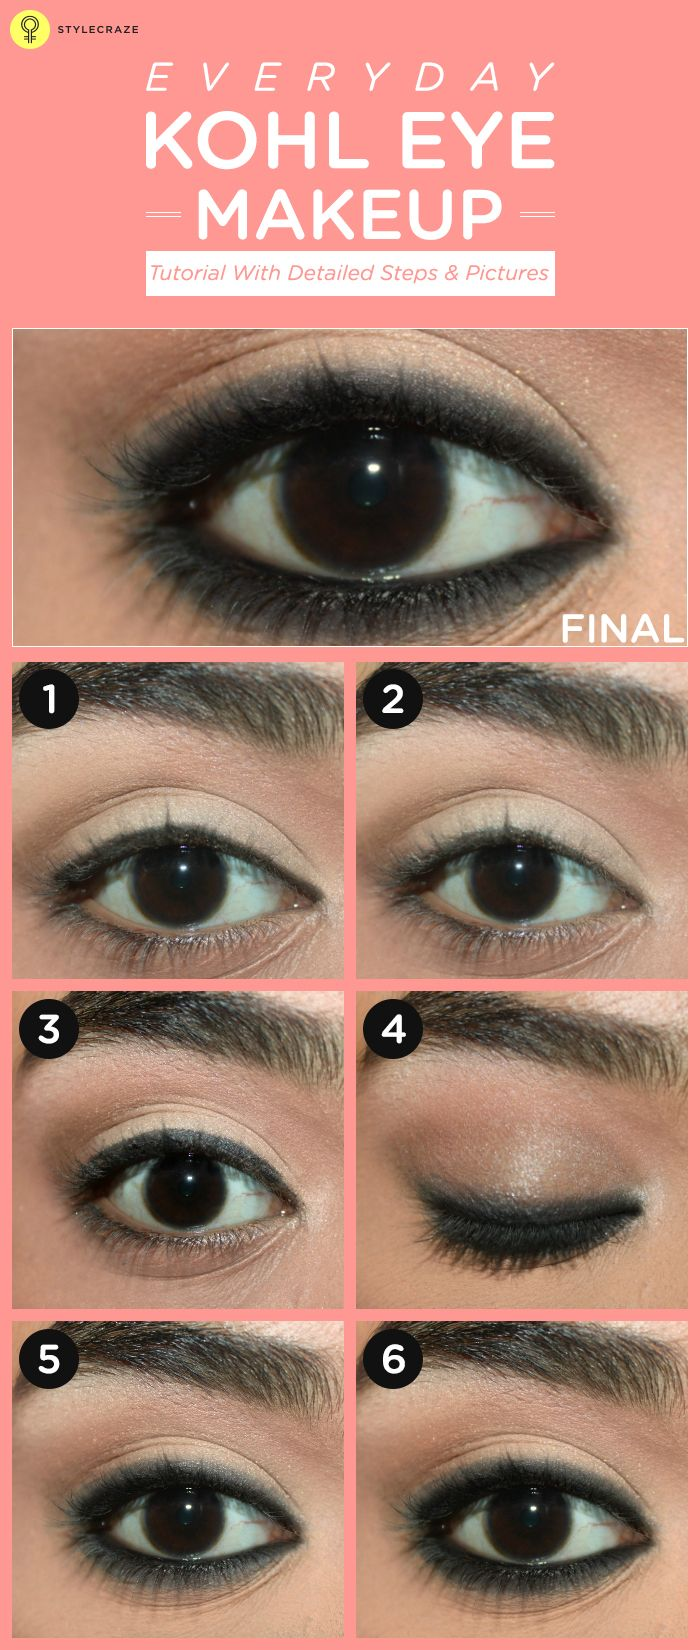 How To Apply Kajal On Eyes Perfectly? - Step by Step Tutorial